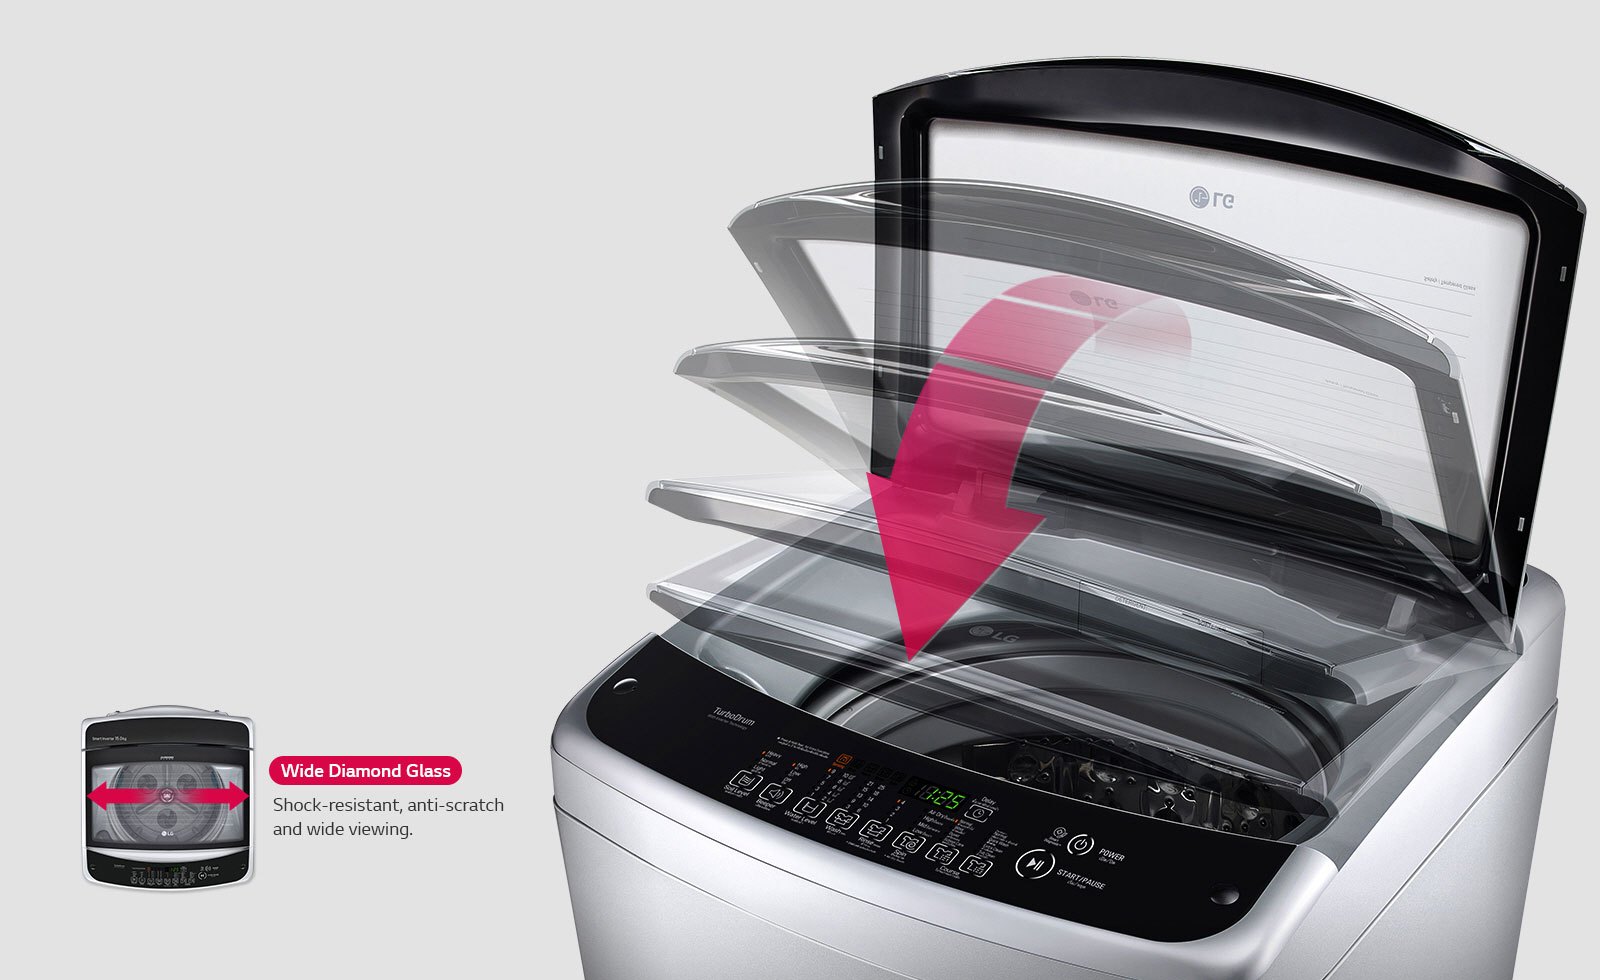 LG washing machines - Safe & Convenient Design